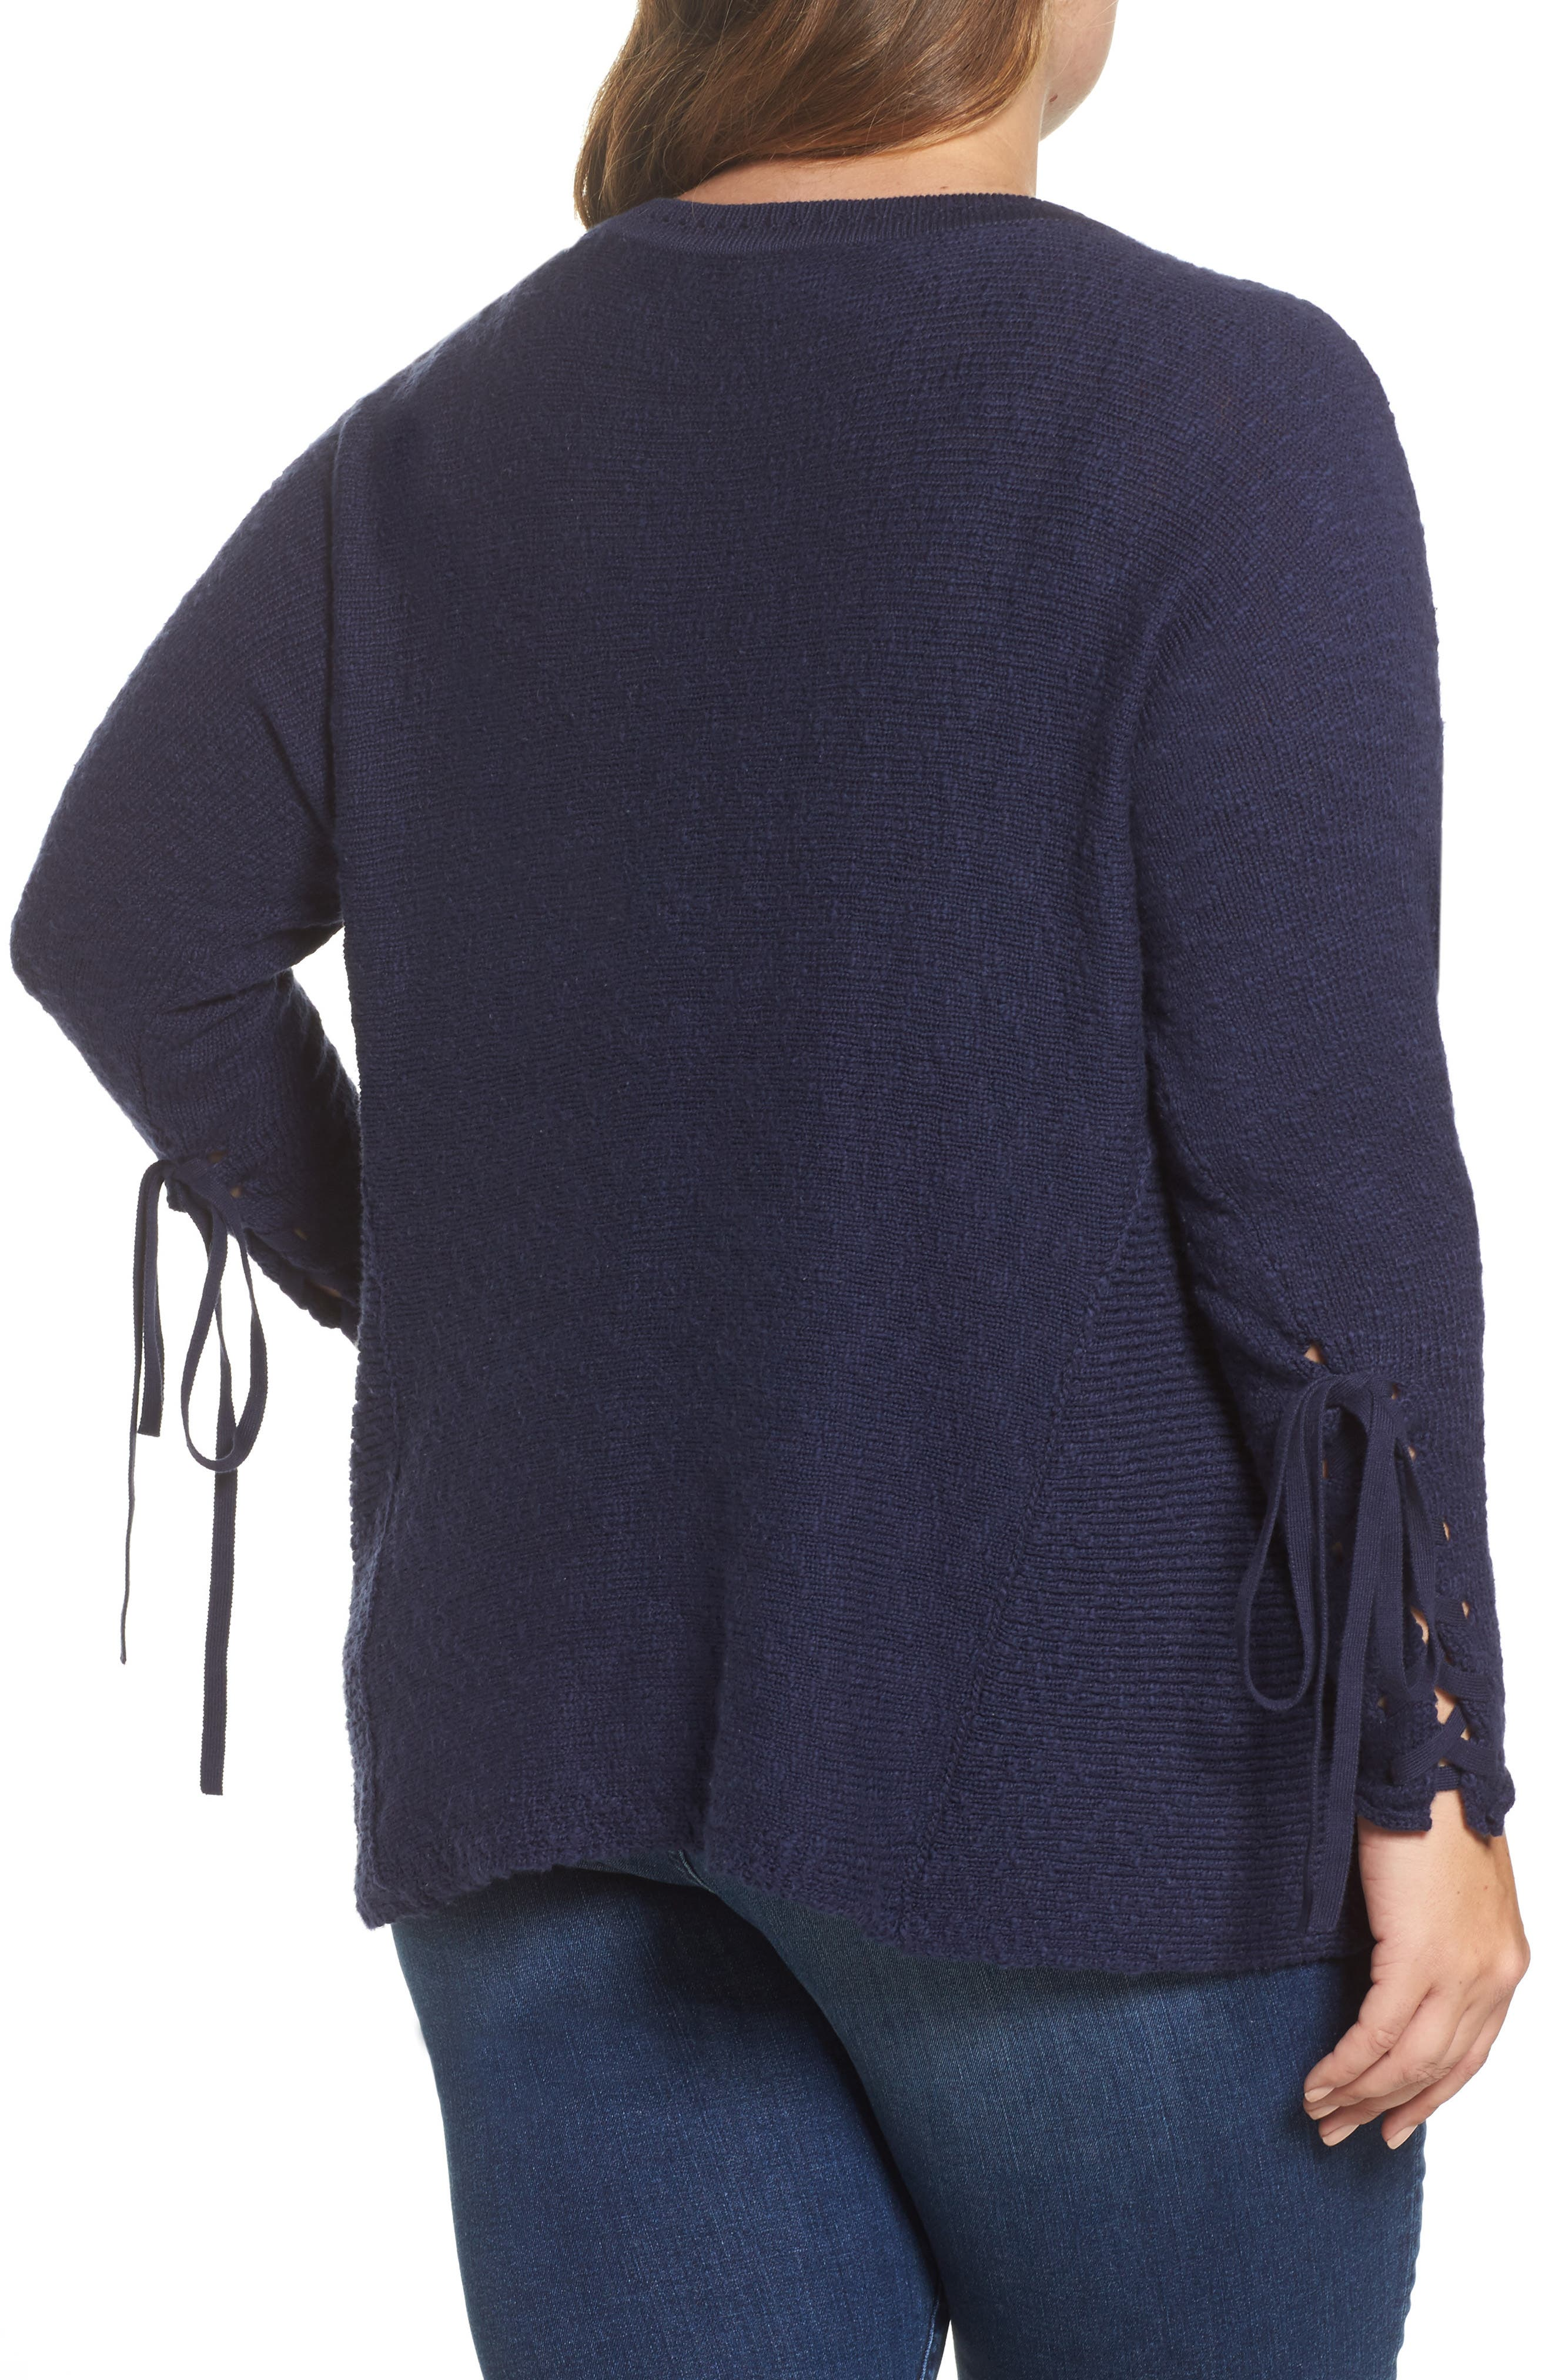 Mix Stitch Tie Sleeve Sweater,                             Alternate thumbnail 2, color,                             410